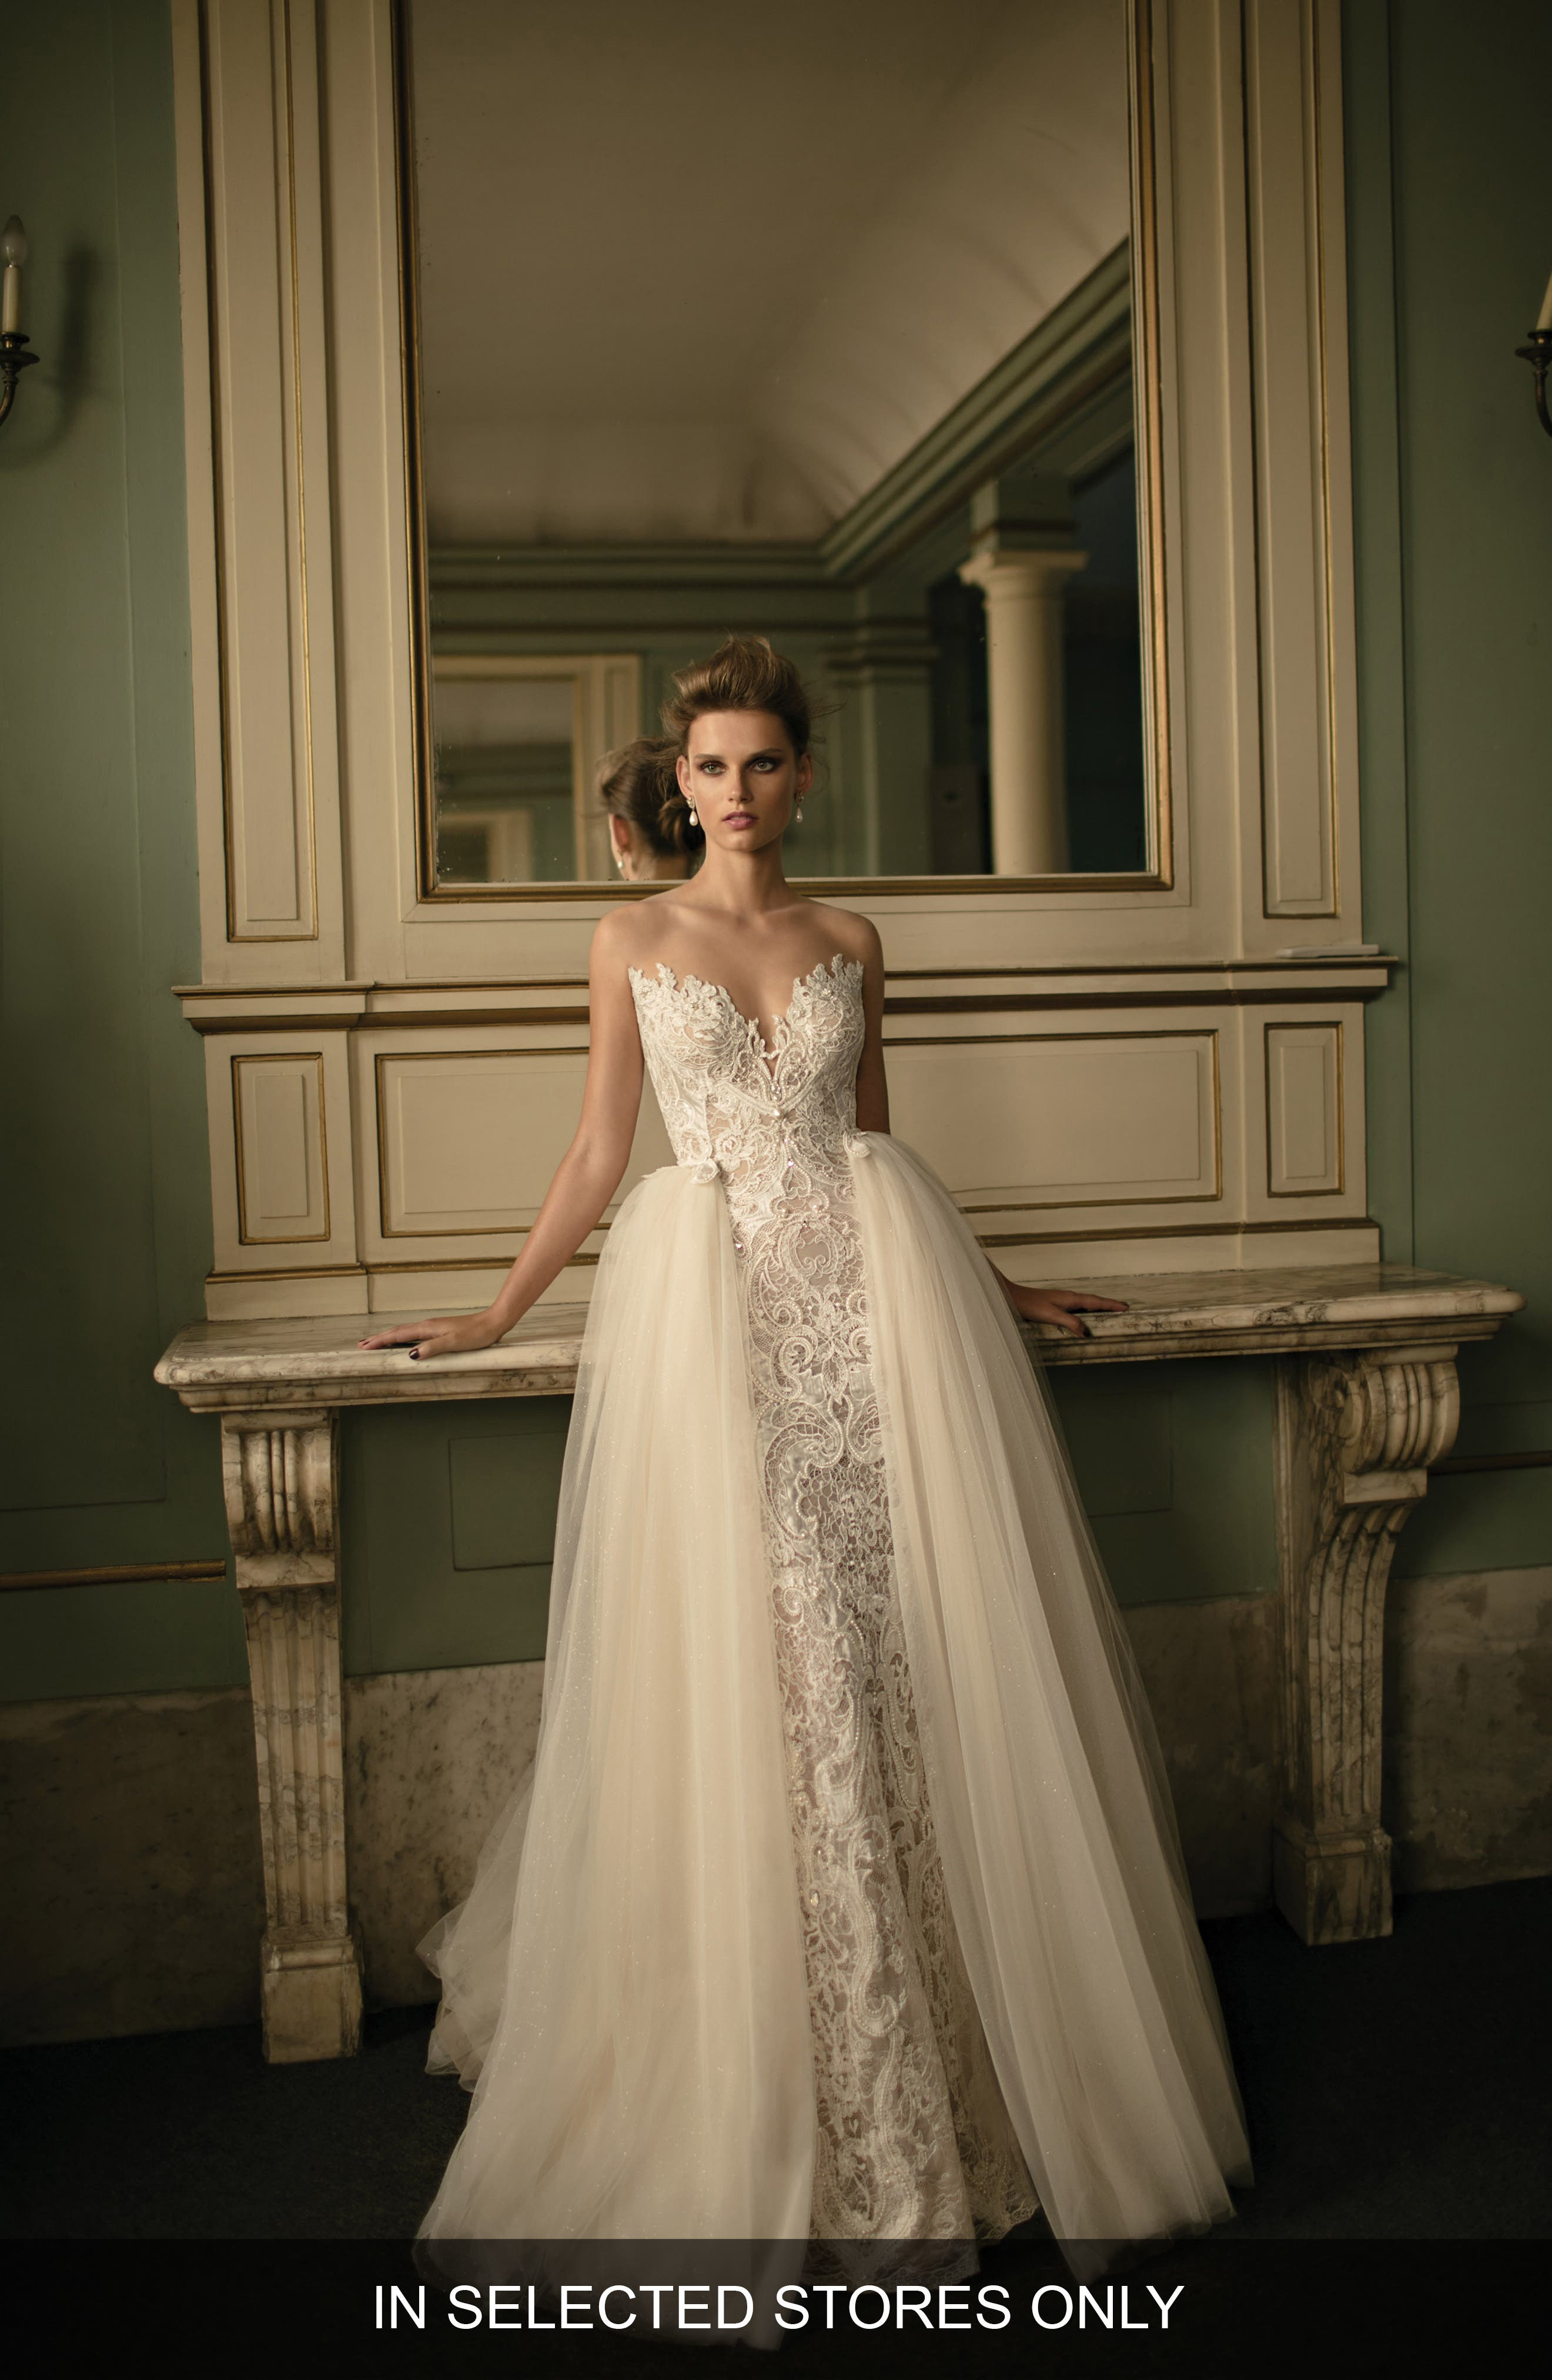 Alternate Image 1 Selected - Berta Beaded Lace & Tulle Ballgown